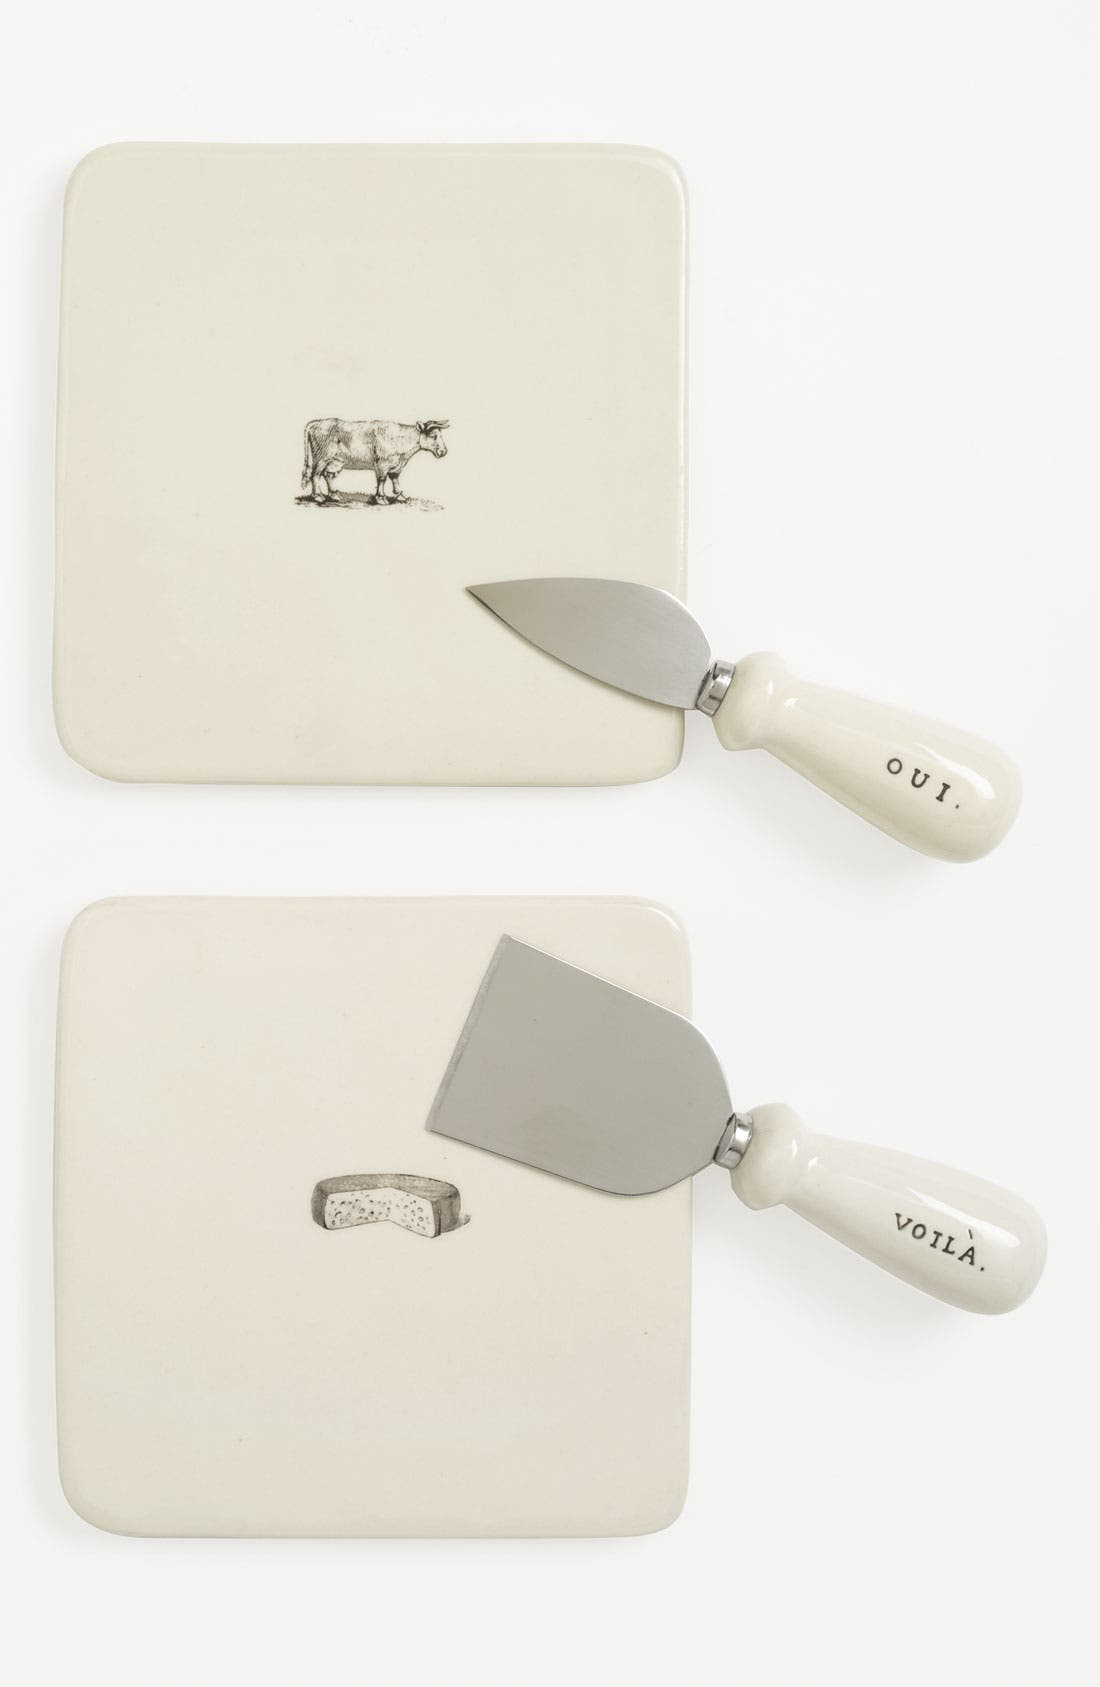 Main Image - Rae Dunn by Magenta 'Say Cheese' Plate & Knife (Set of 2)